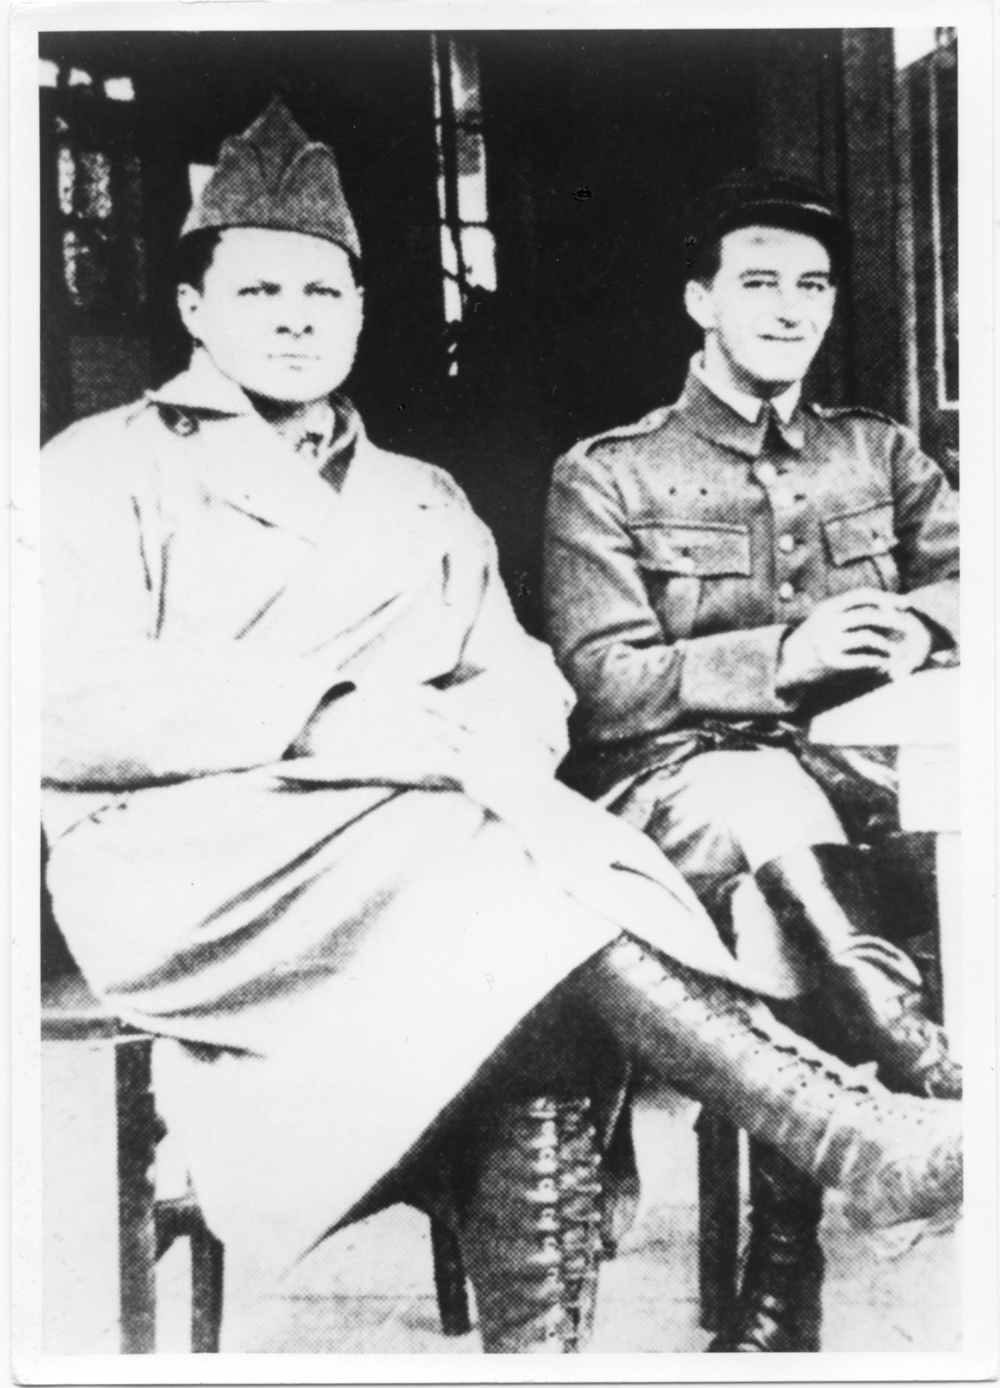 Lafayette Flying Corps members Paul Frank Baer and Alfred Pelton take a break from flight training at the Café d'Avord in April 1917. An Ohioan, Baer served in N.80 and 103rd Aero Squadron, U.S. Army Air Service, scoring nine air victories and receiving the Distinguished Service Cross and Croix de Guerre with Palms before being shot down and captured on May 22, 1918. (Paul Frank Baer Album Via Jon Guttman)